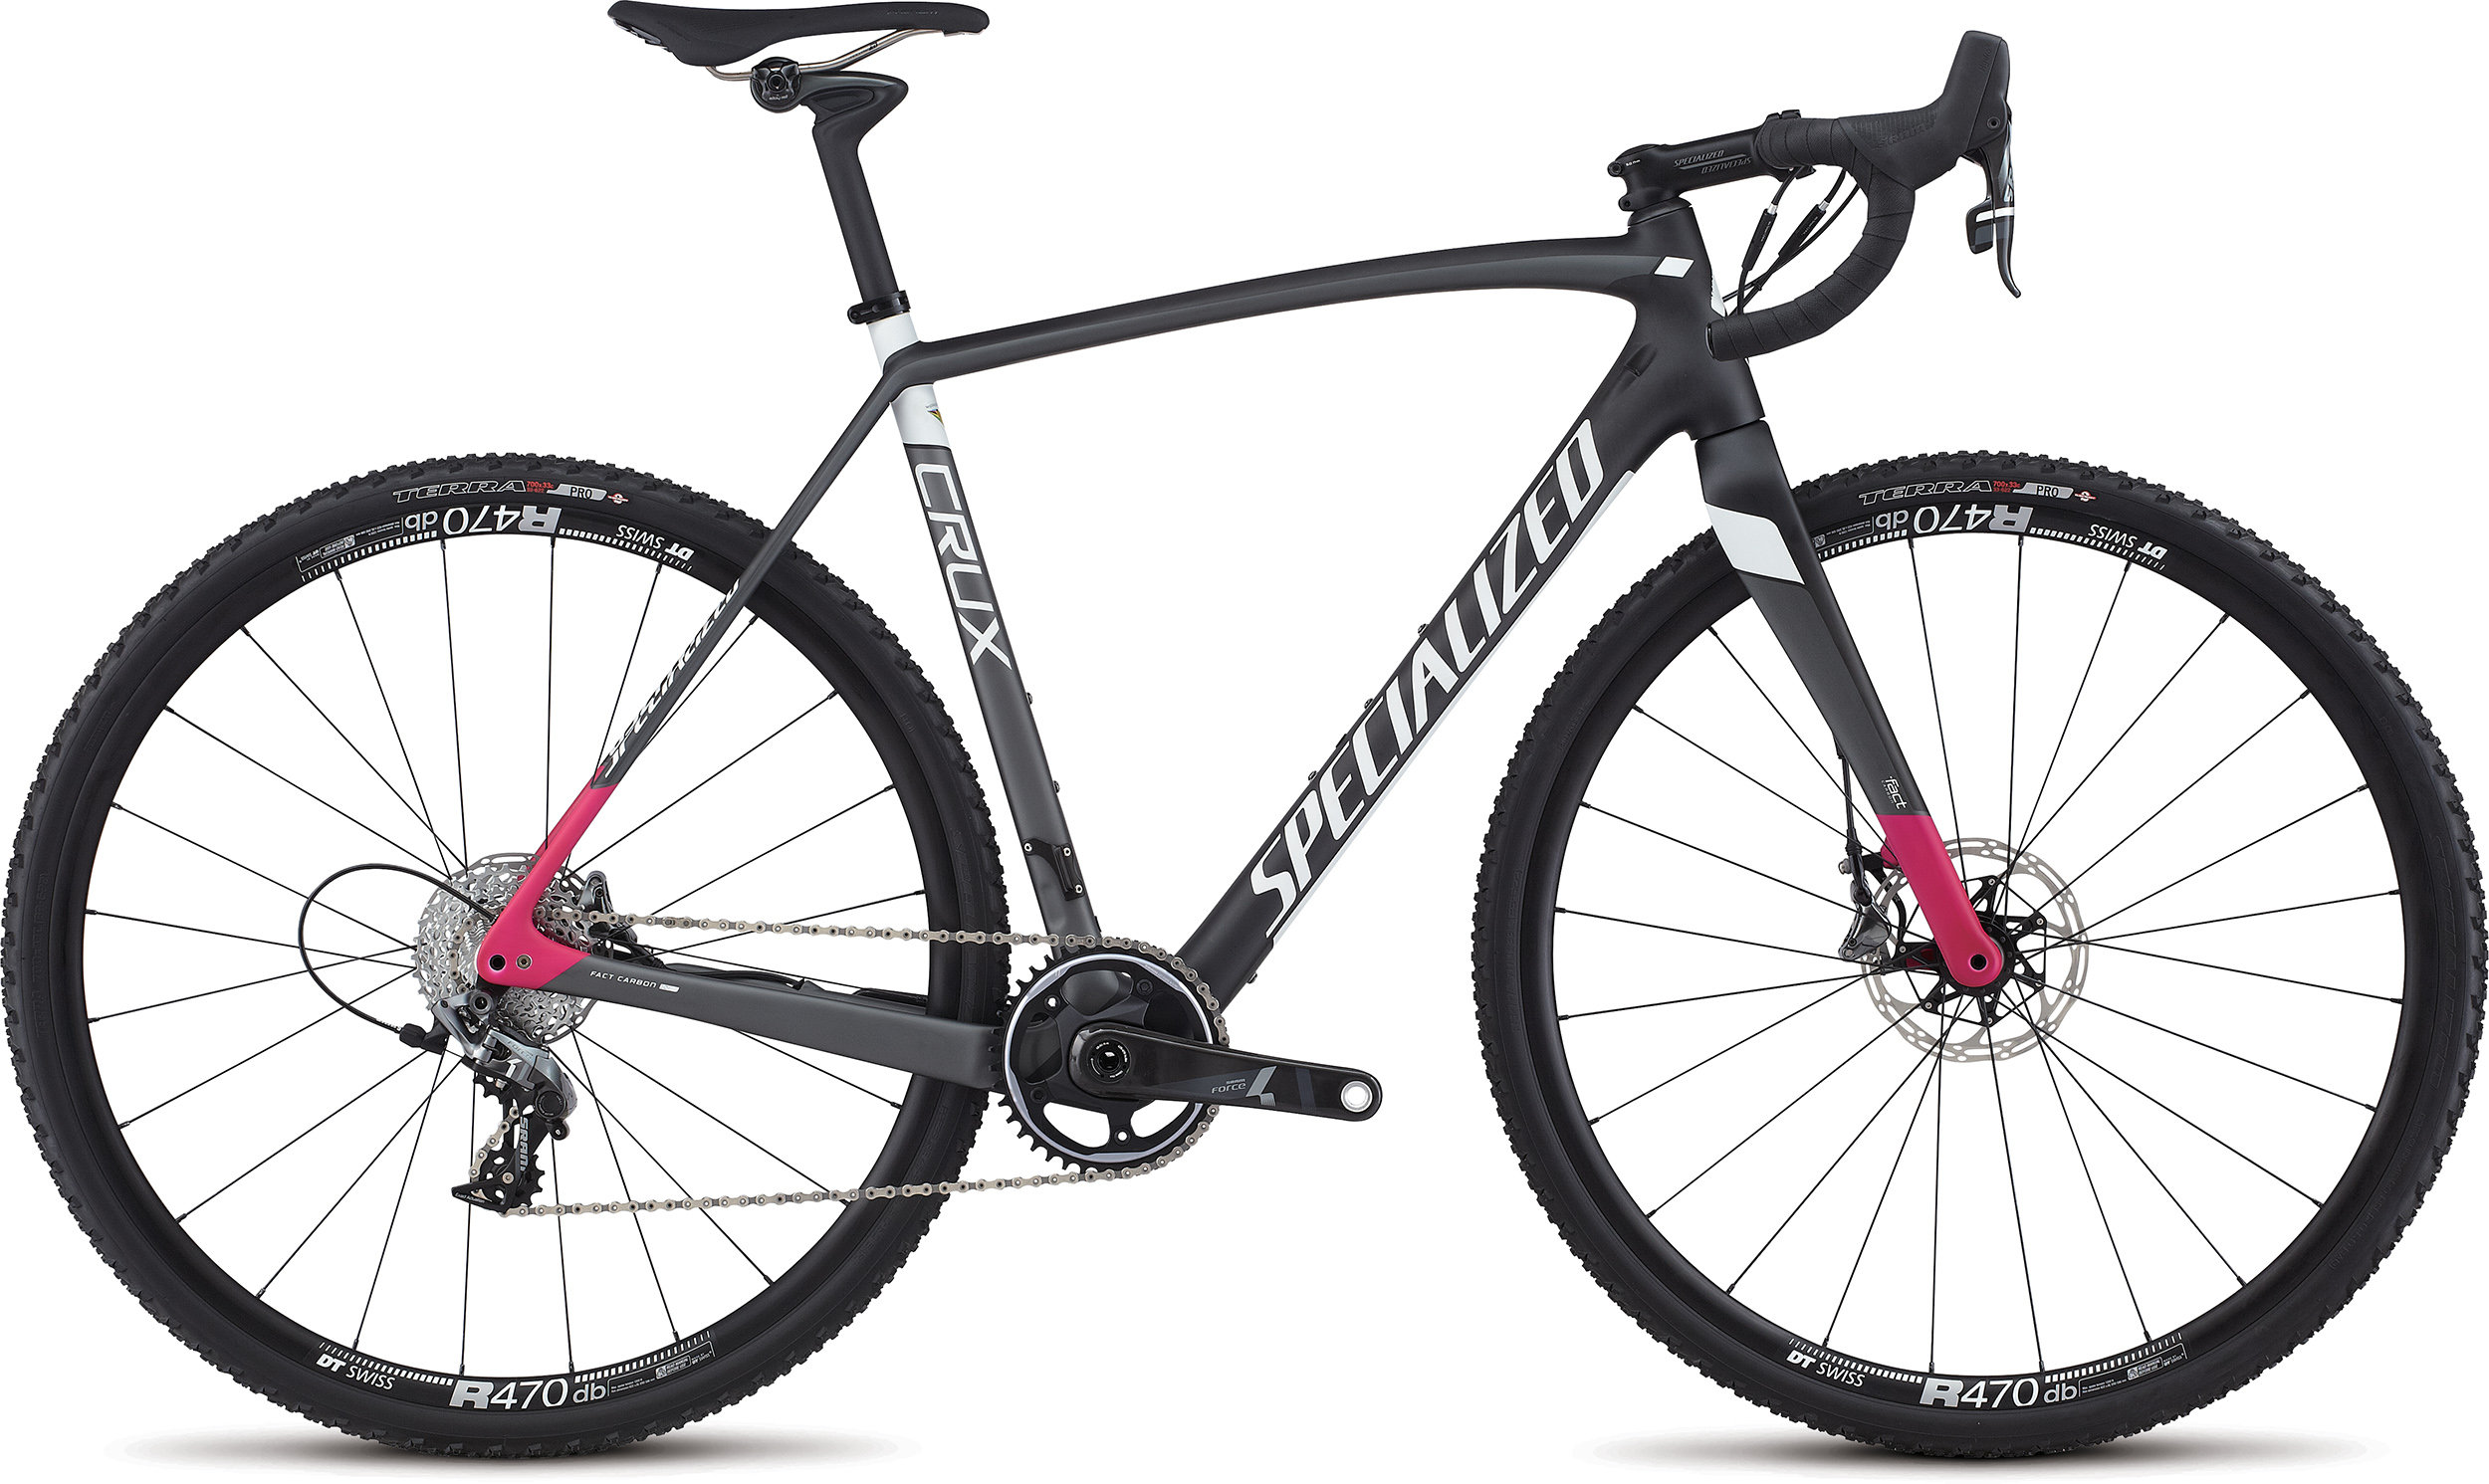 SPECIALIZED CRUX EXPERT X1 CARB/CHAR/BRTPNK 46 - Bike Zone